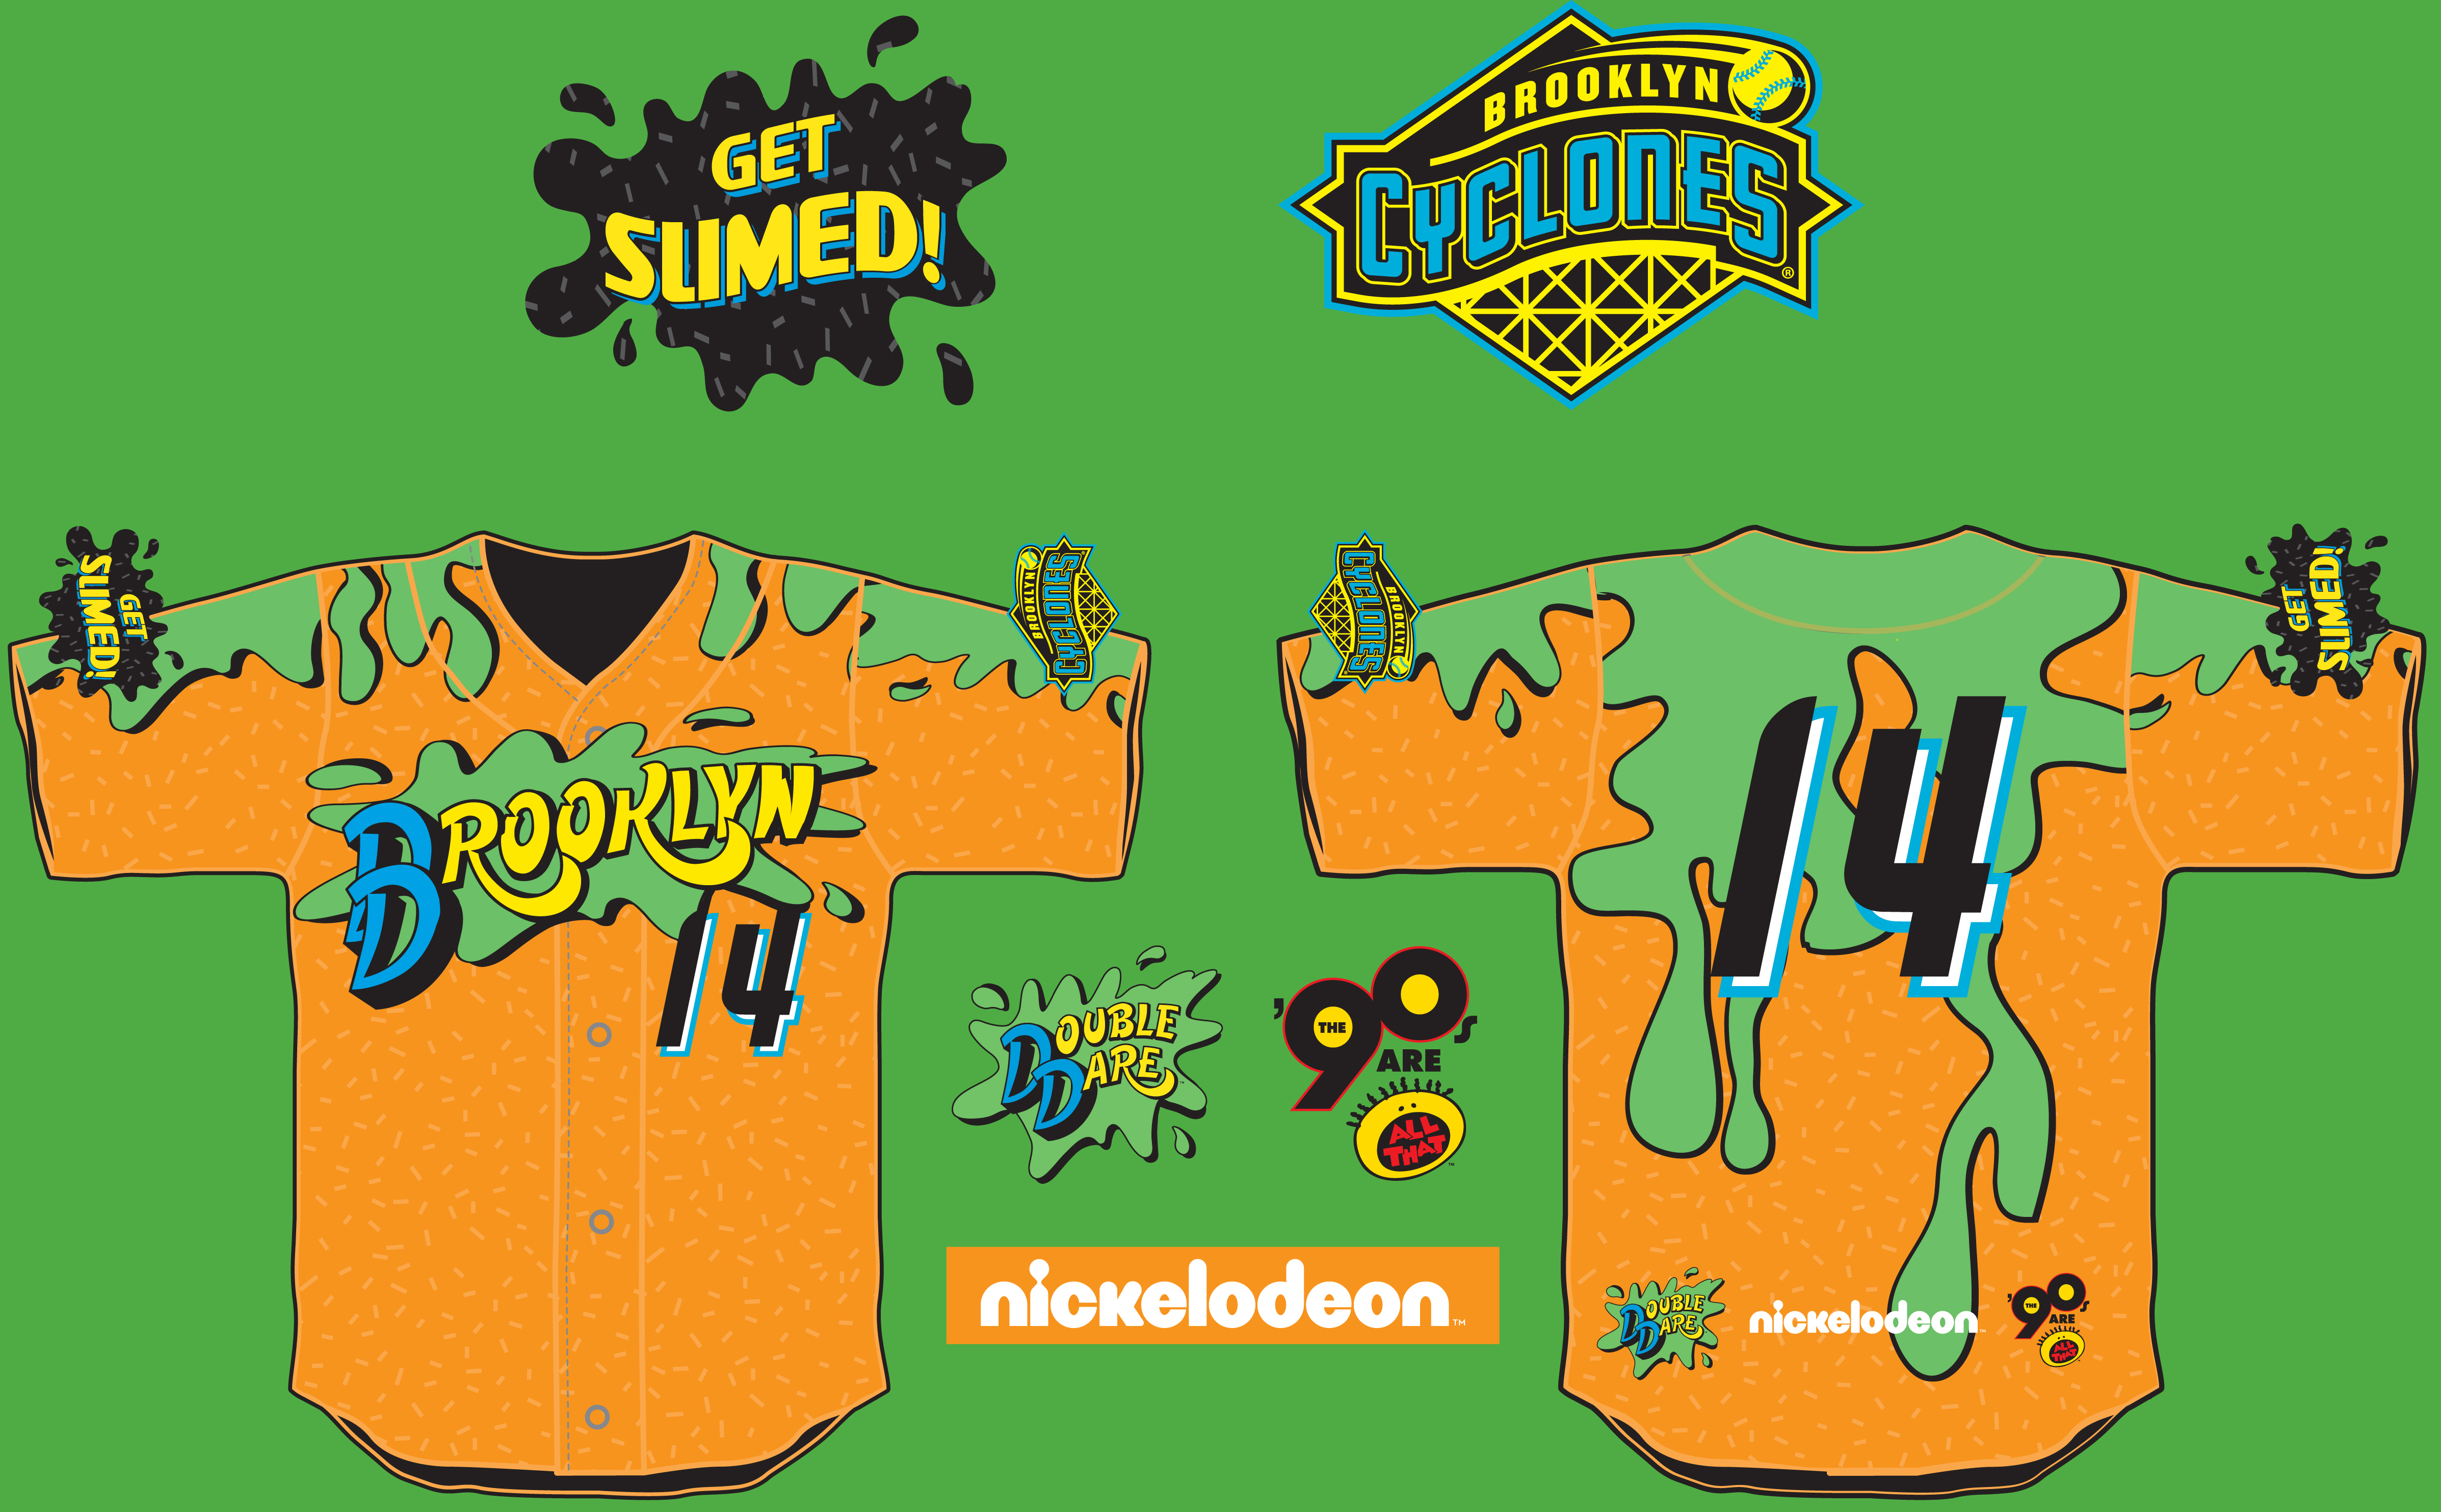 Brooklyn Cyclones To Host A Nickelodeon-Themed Night